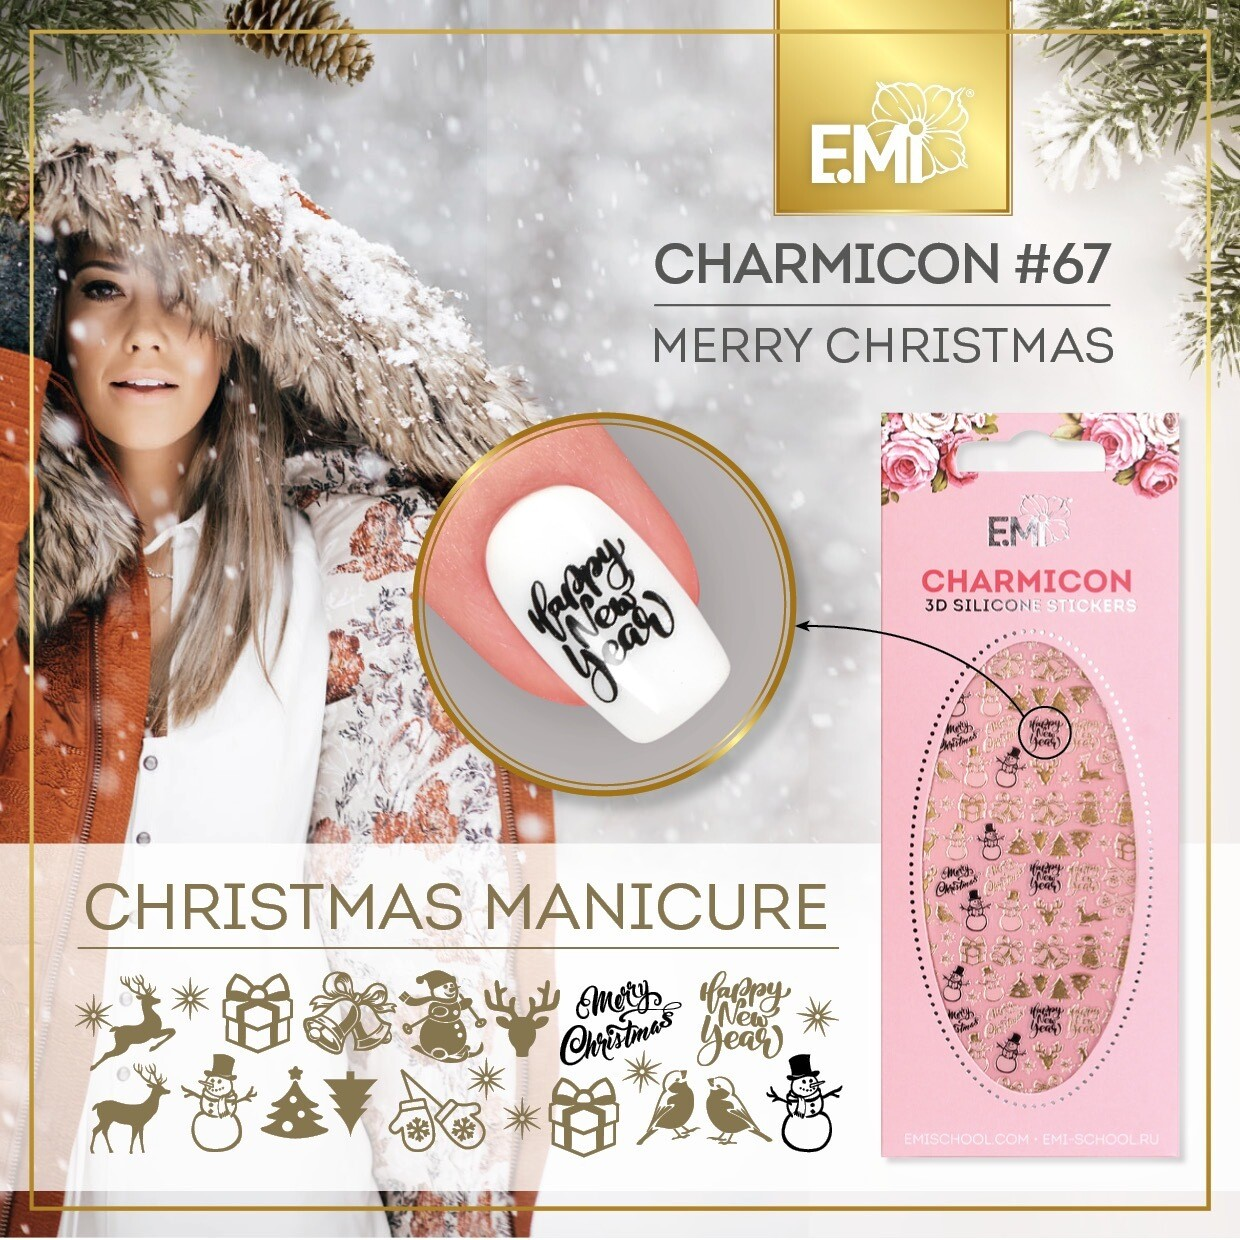 Charmicon Silicone Stickers #67 Merry Christmas